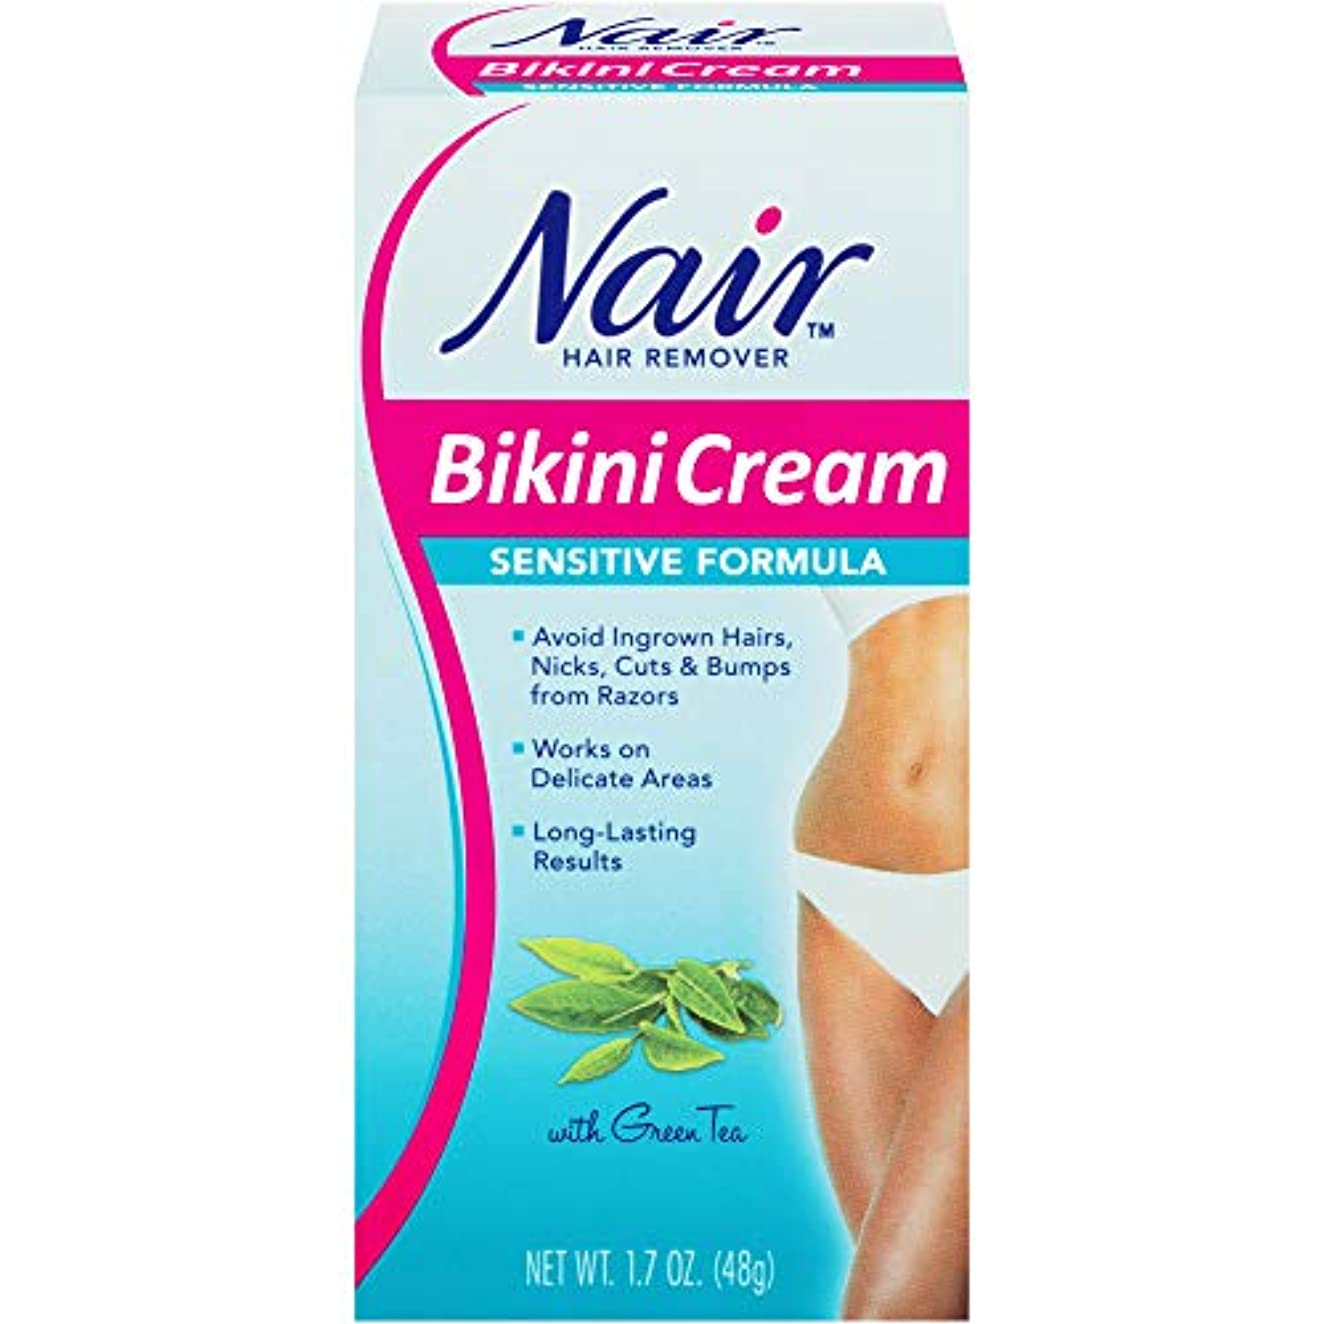 とんでもない遠洋の限りなくNair hair remover bikini cream with green tea, Sensitive formula - 1.7 oz (並行輸入品)